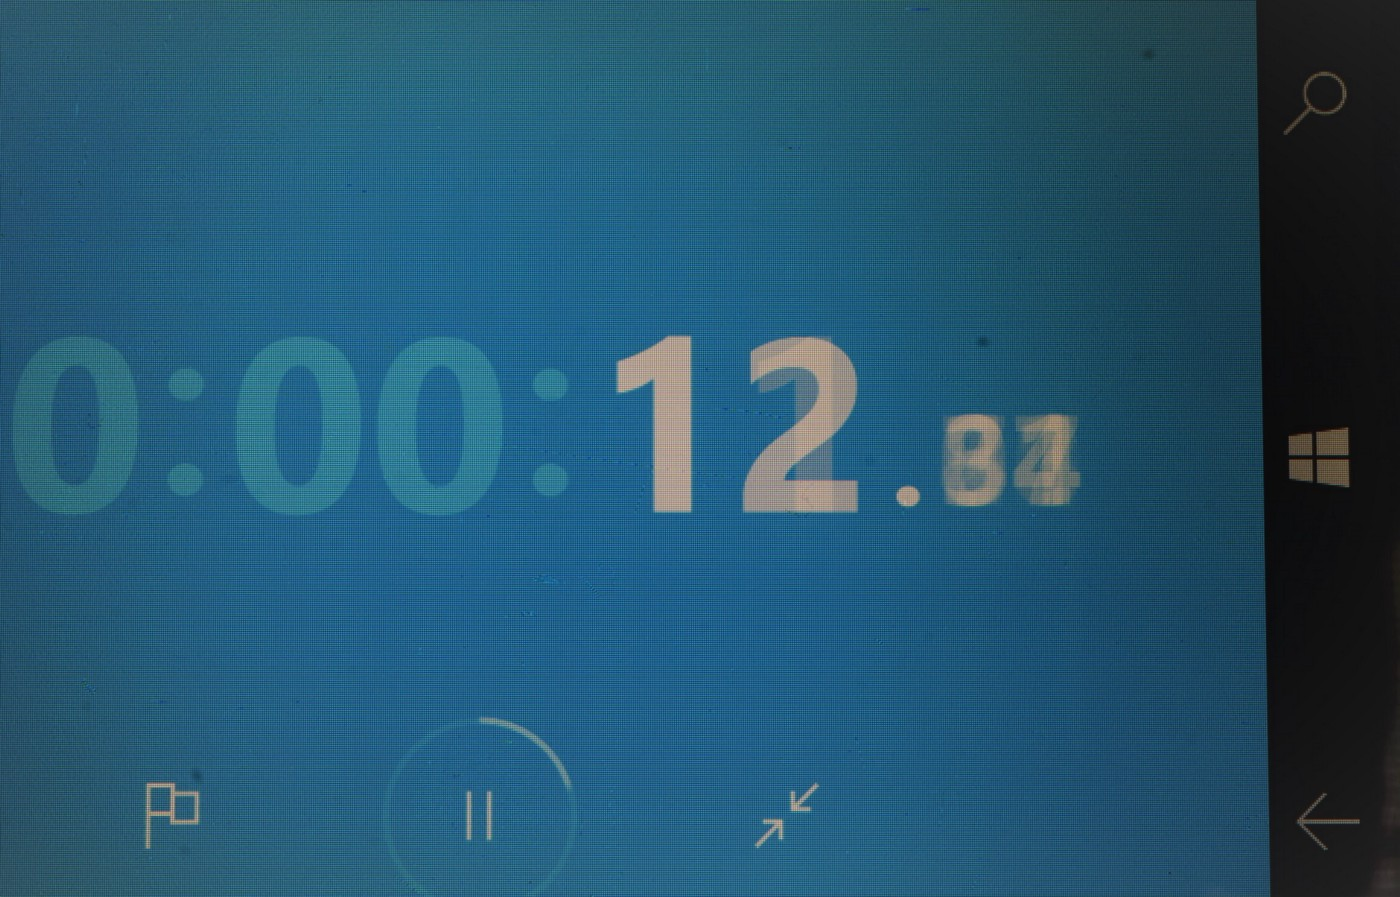 cellphone stopwatch numbers in close-up, shot at slow shutter speed to blur the digits: white digits on blue background